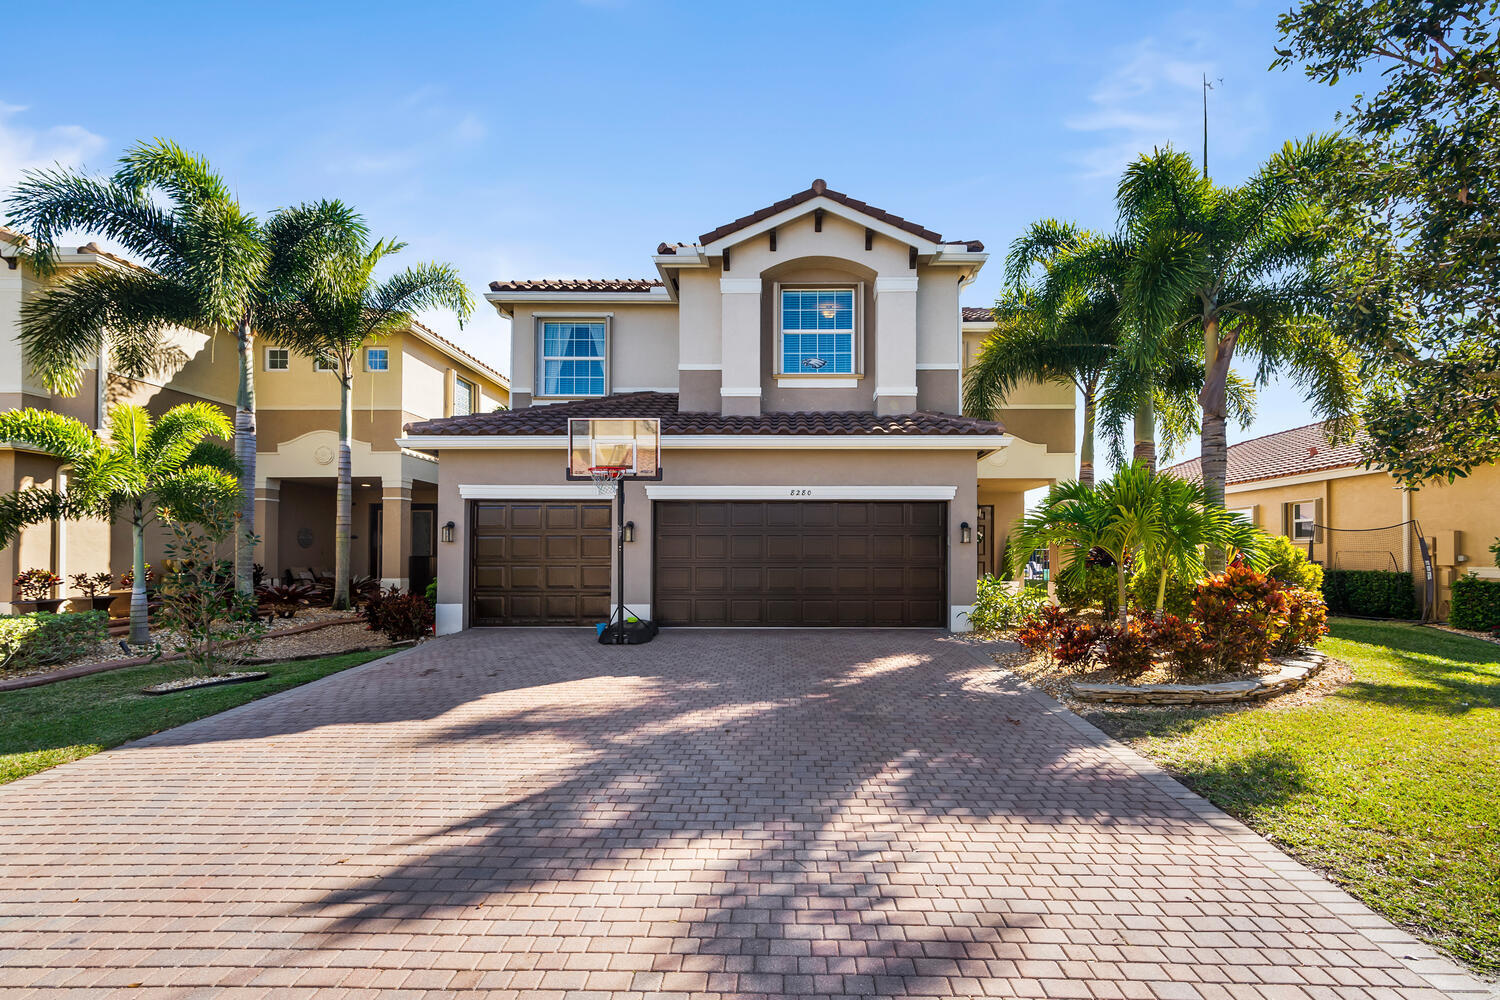 8280 Savara Streams Lane  Boynton Beach, FL 33473